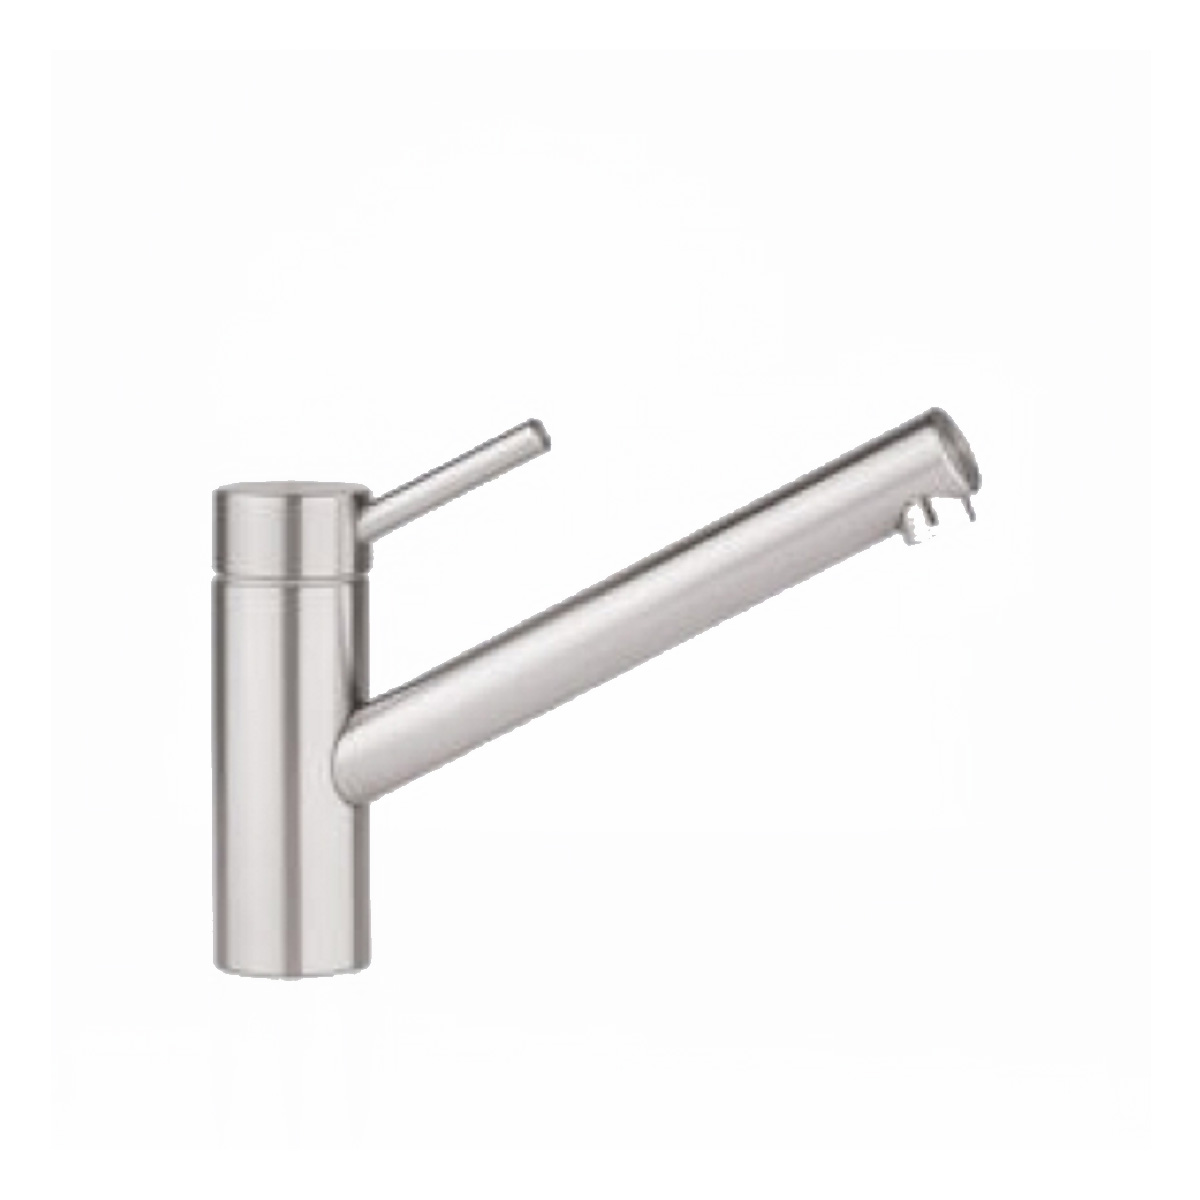 KWC 10271023700 Inox Kitchen Mixer Tap